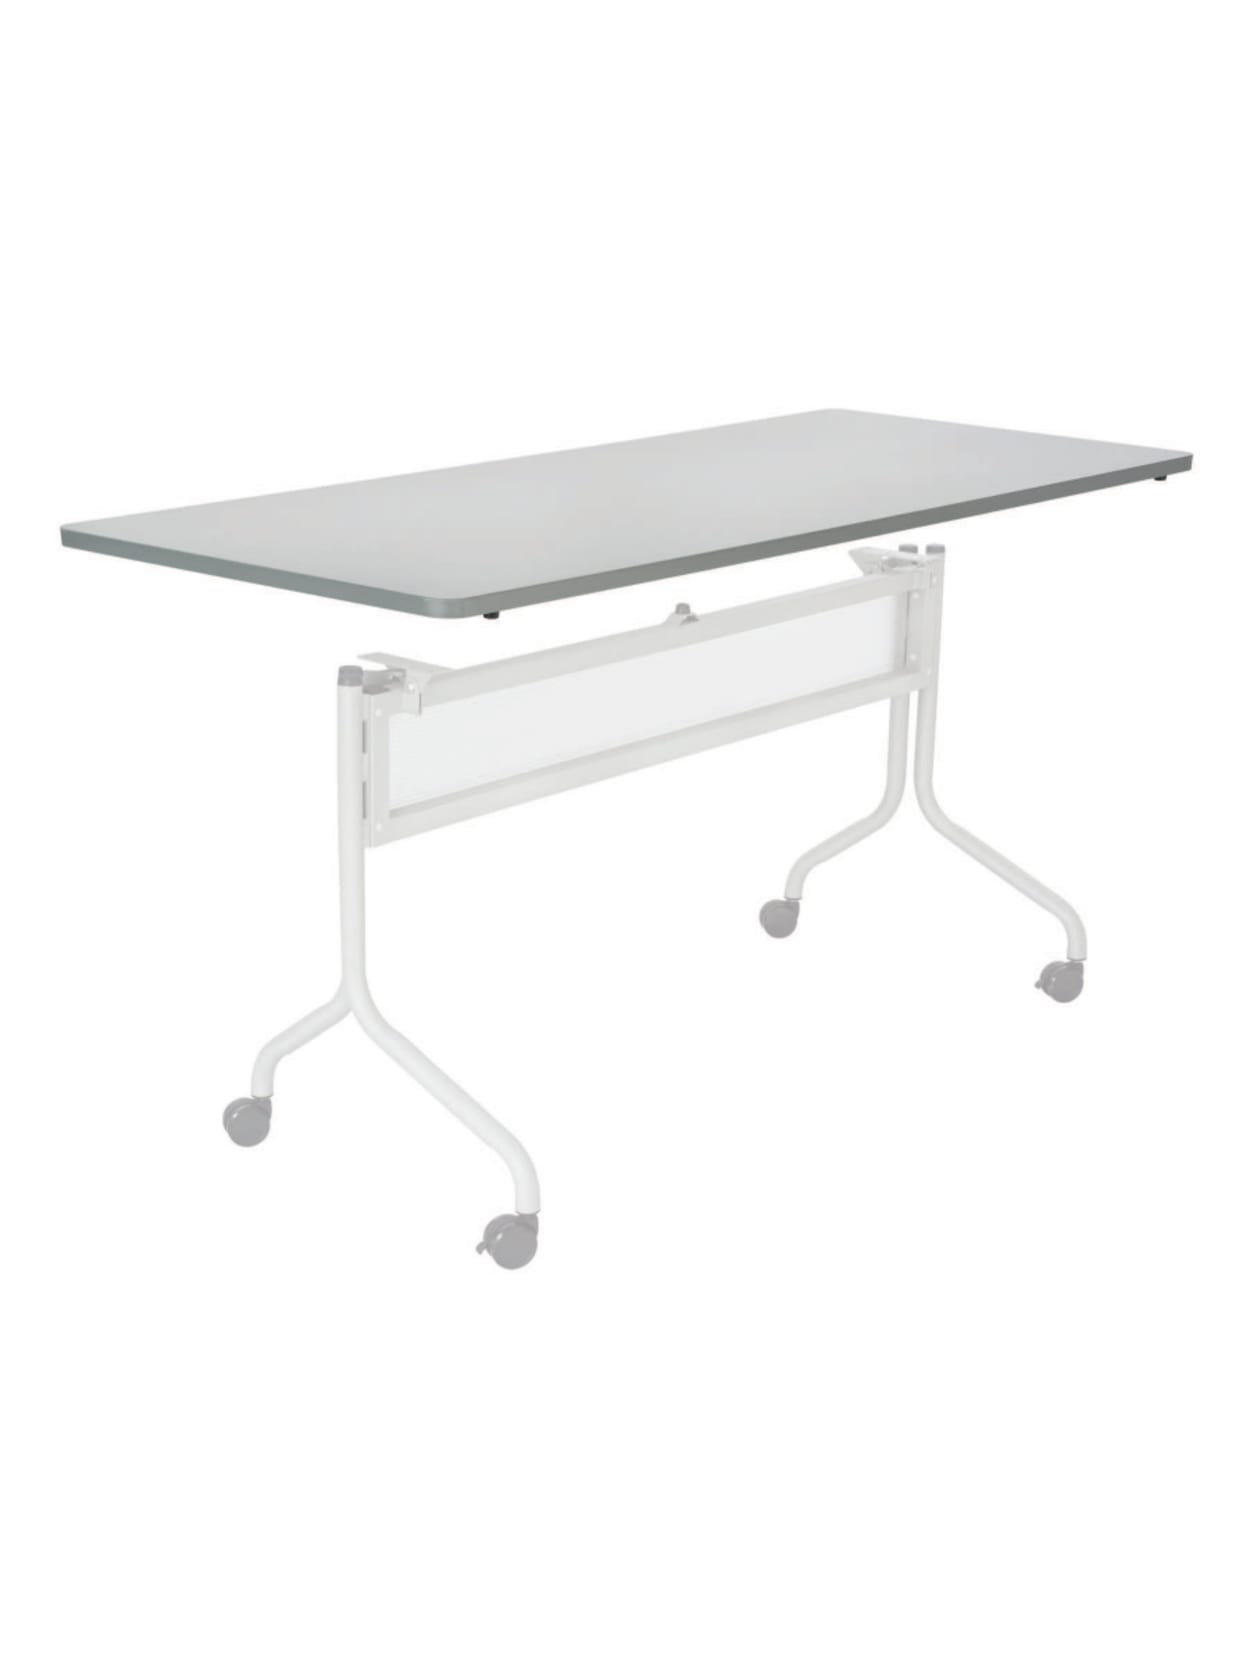 Safco Products Impromptu Rectangle Mobile Training Table 71D x 24W Gray Top//Silver Base